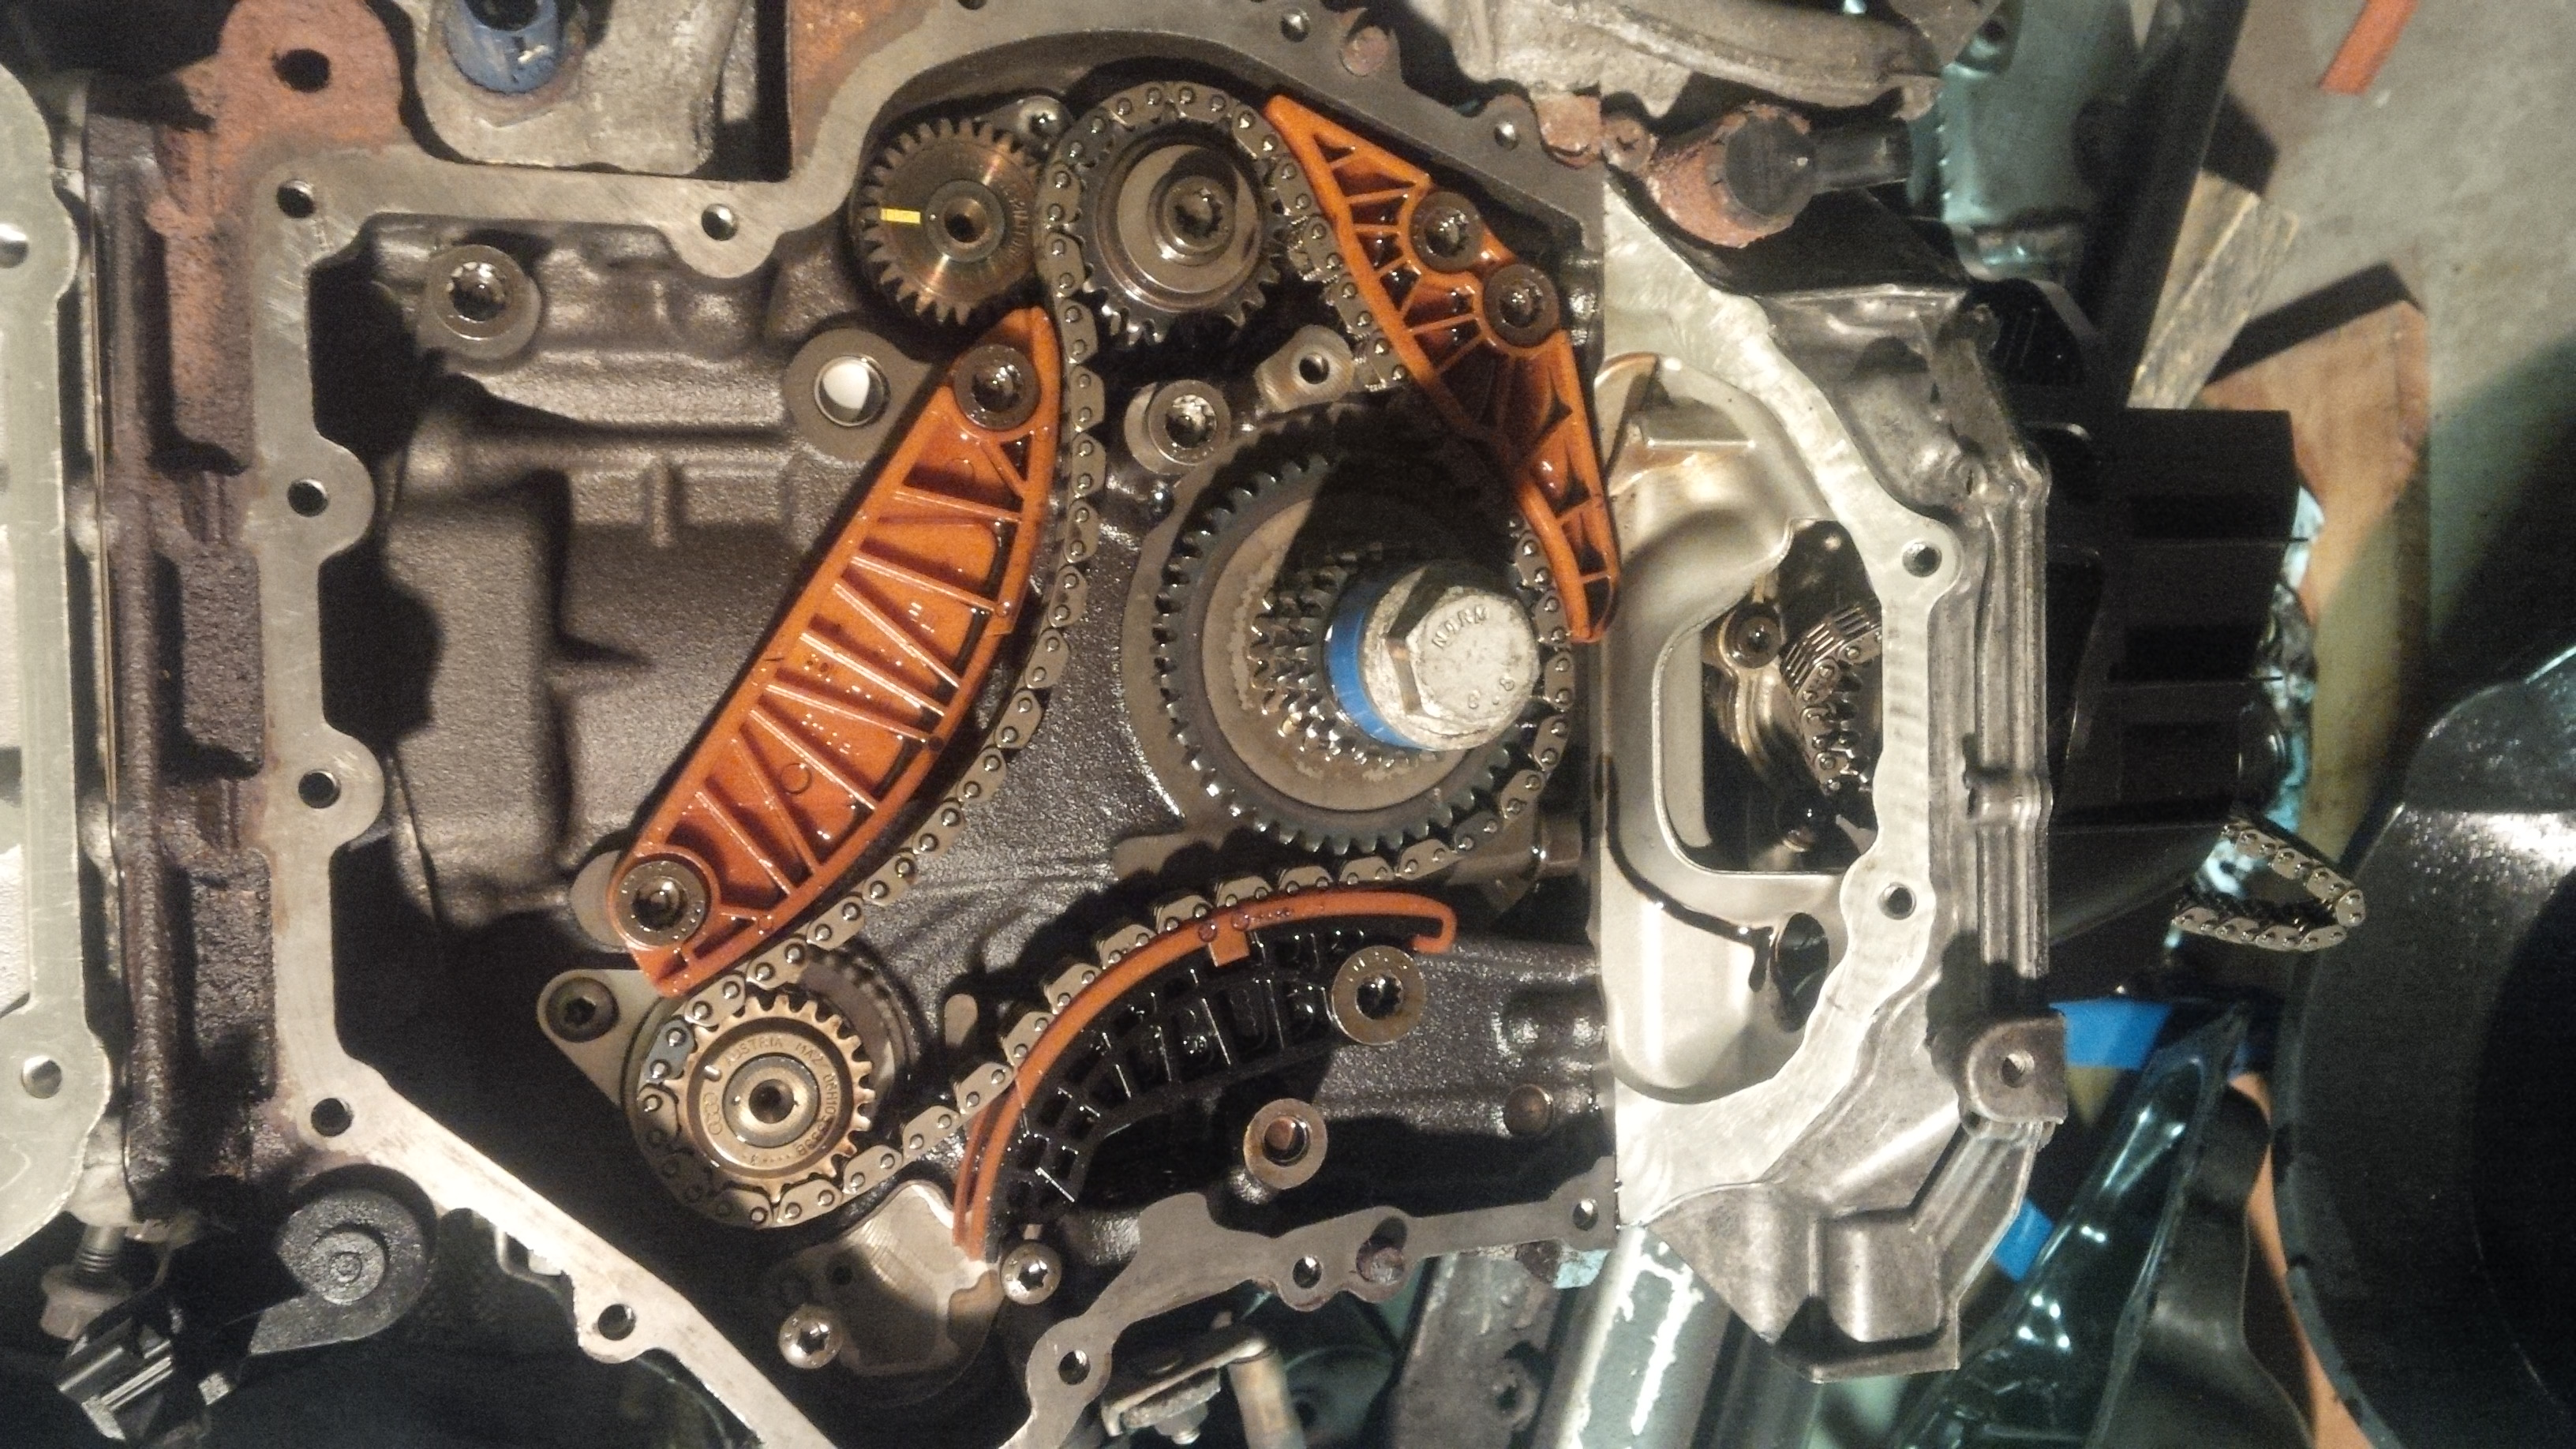 2005 Aston Martin Vanquish S Heater Blower Resistor Replacement likewise Coolant Reservoir Replacement Cost together with 2005 Chevy Malibu 3 5l V6 Engine likewise Replace additionally Volkswagen Golf Gti Mk Iv Engine Mount Repment. on how to remove 2011 volkswagen jetta engine cover